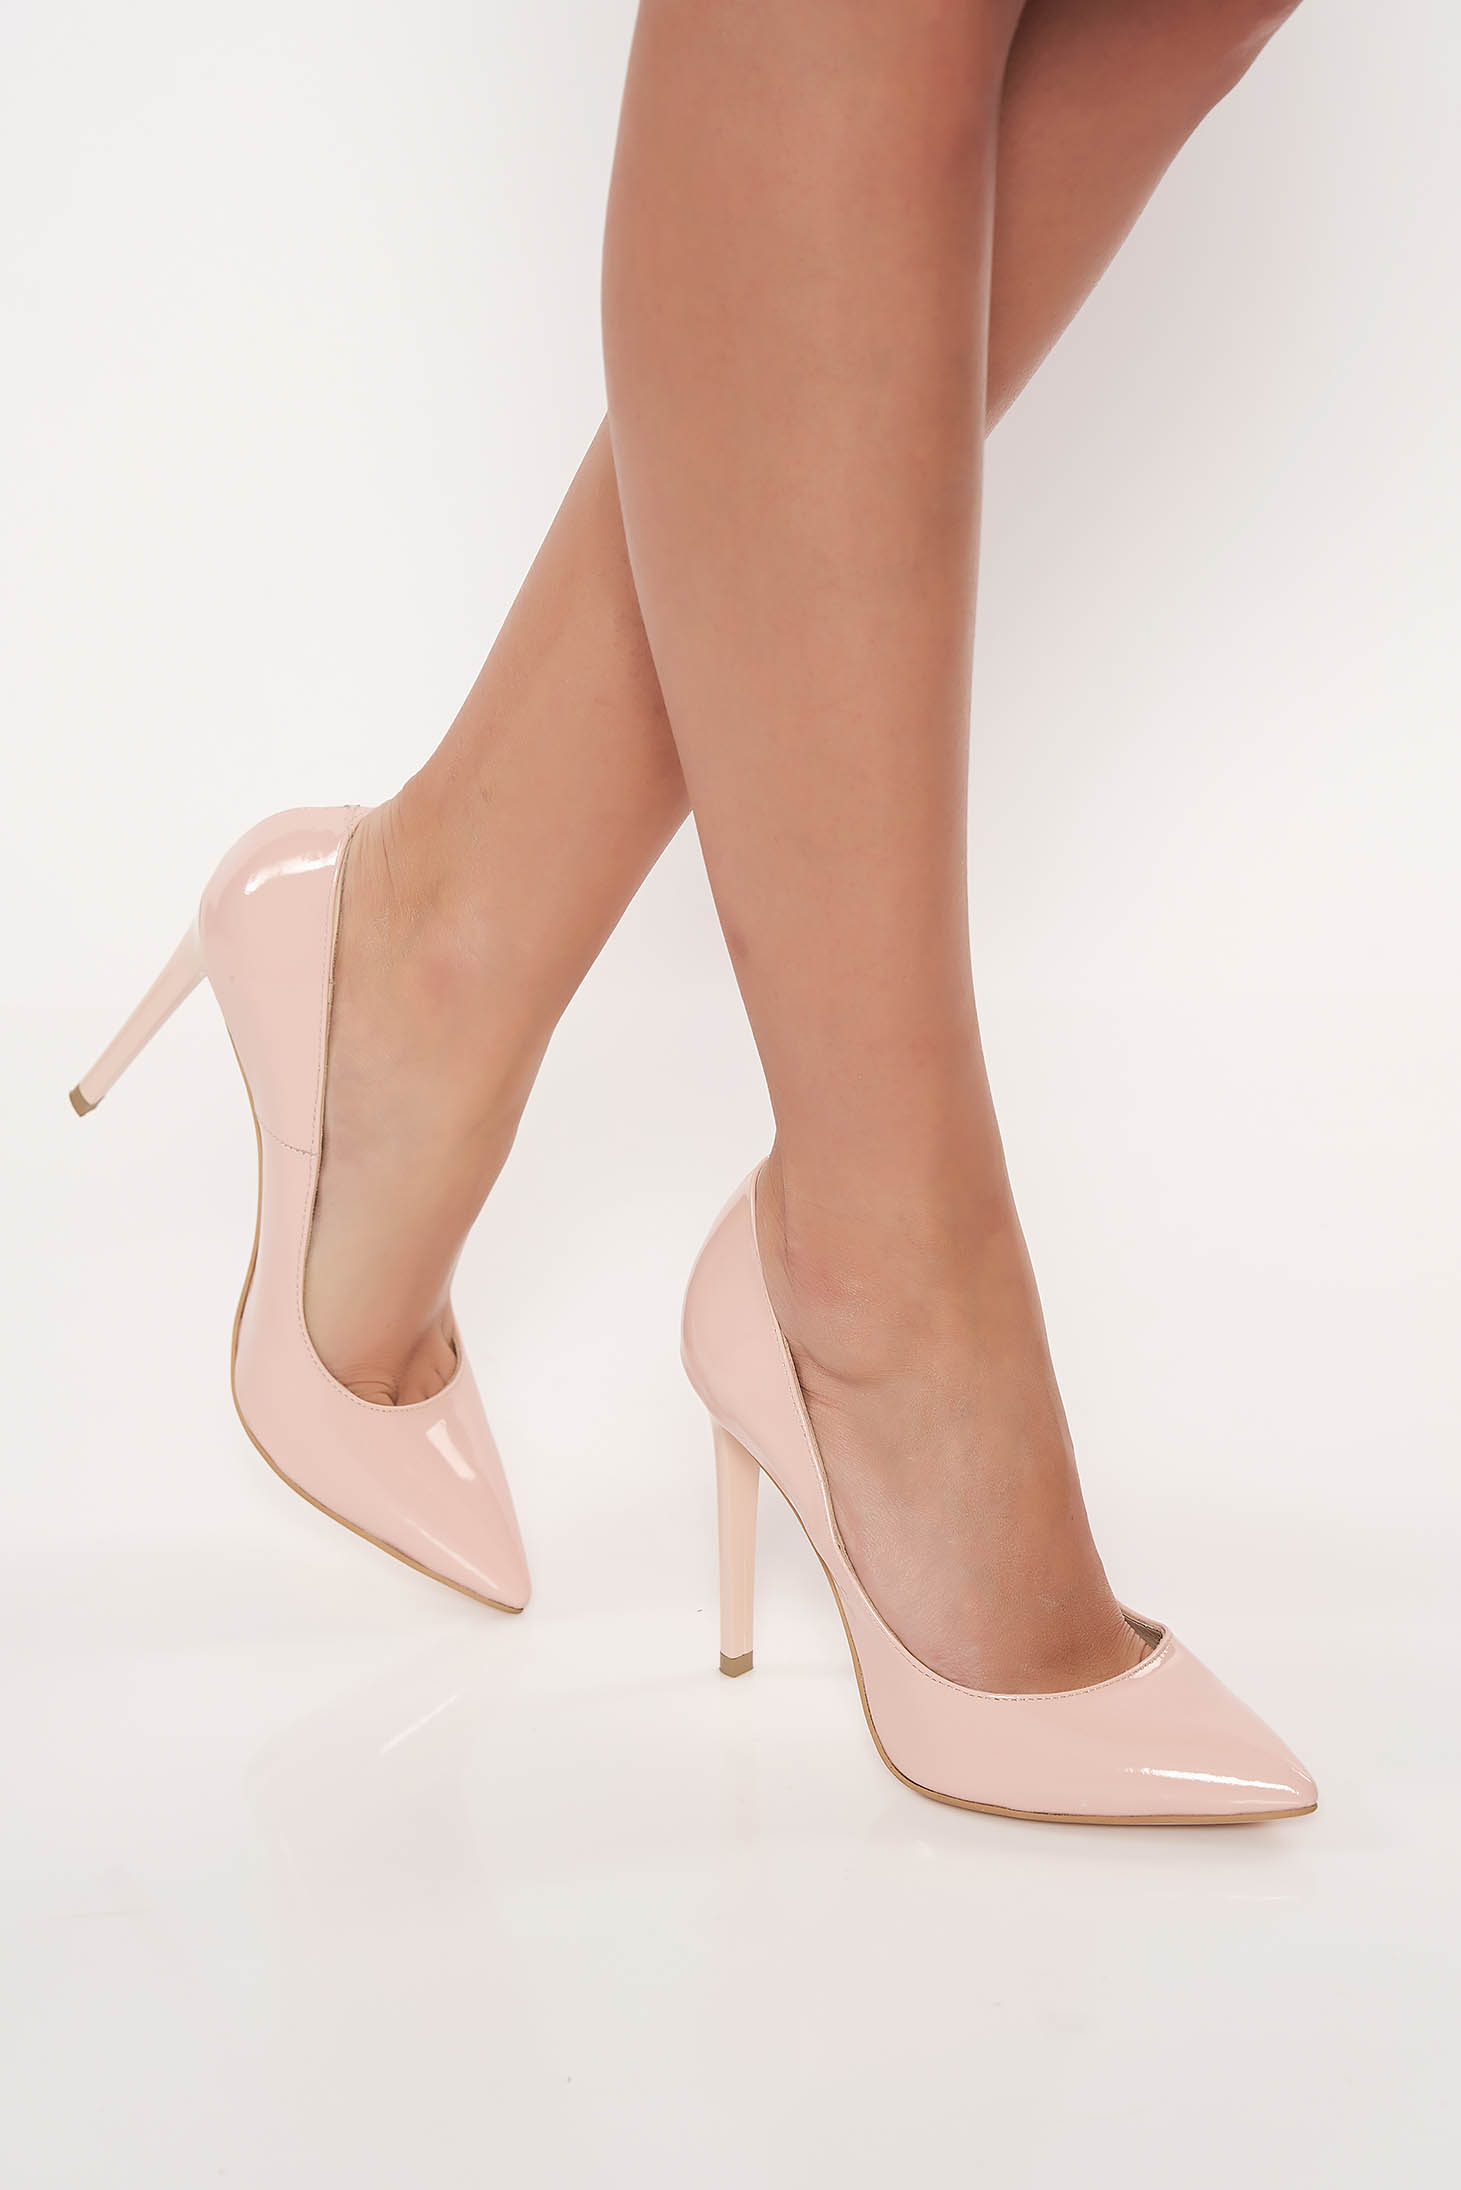 Rosa Elegant Stiletto Shoes Natural Leather With High Heels